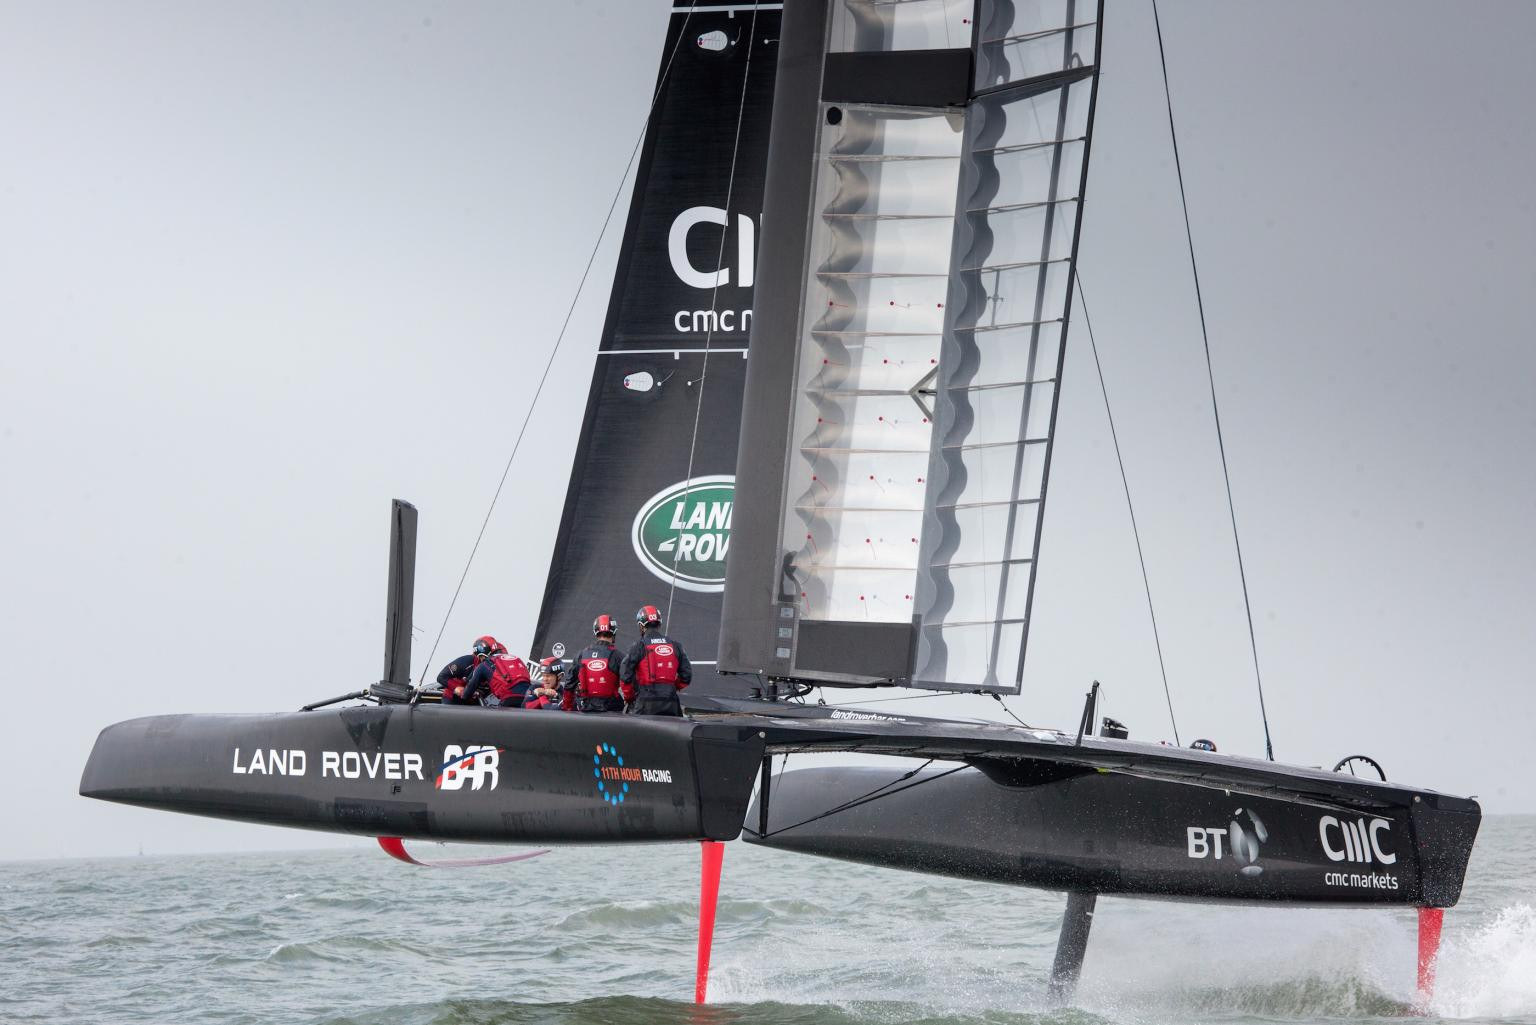 Metal 3D printing will be used on a boat designed to bring the America's Cup home to the UK